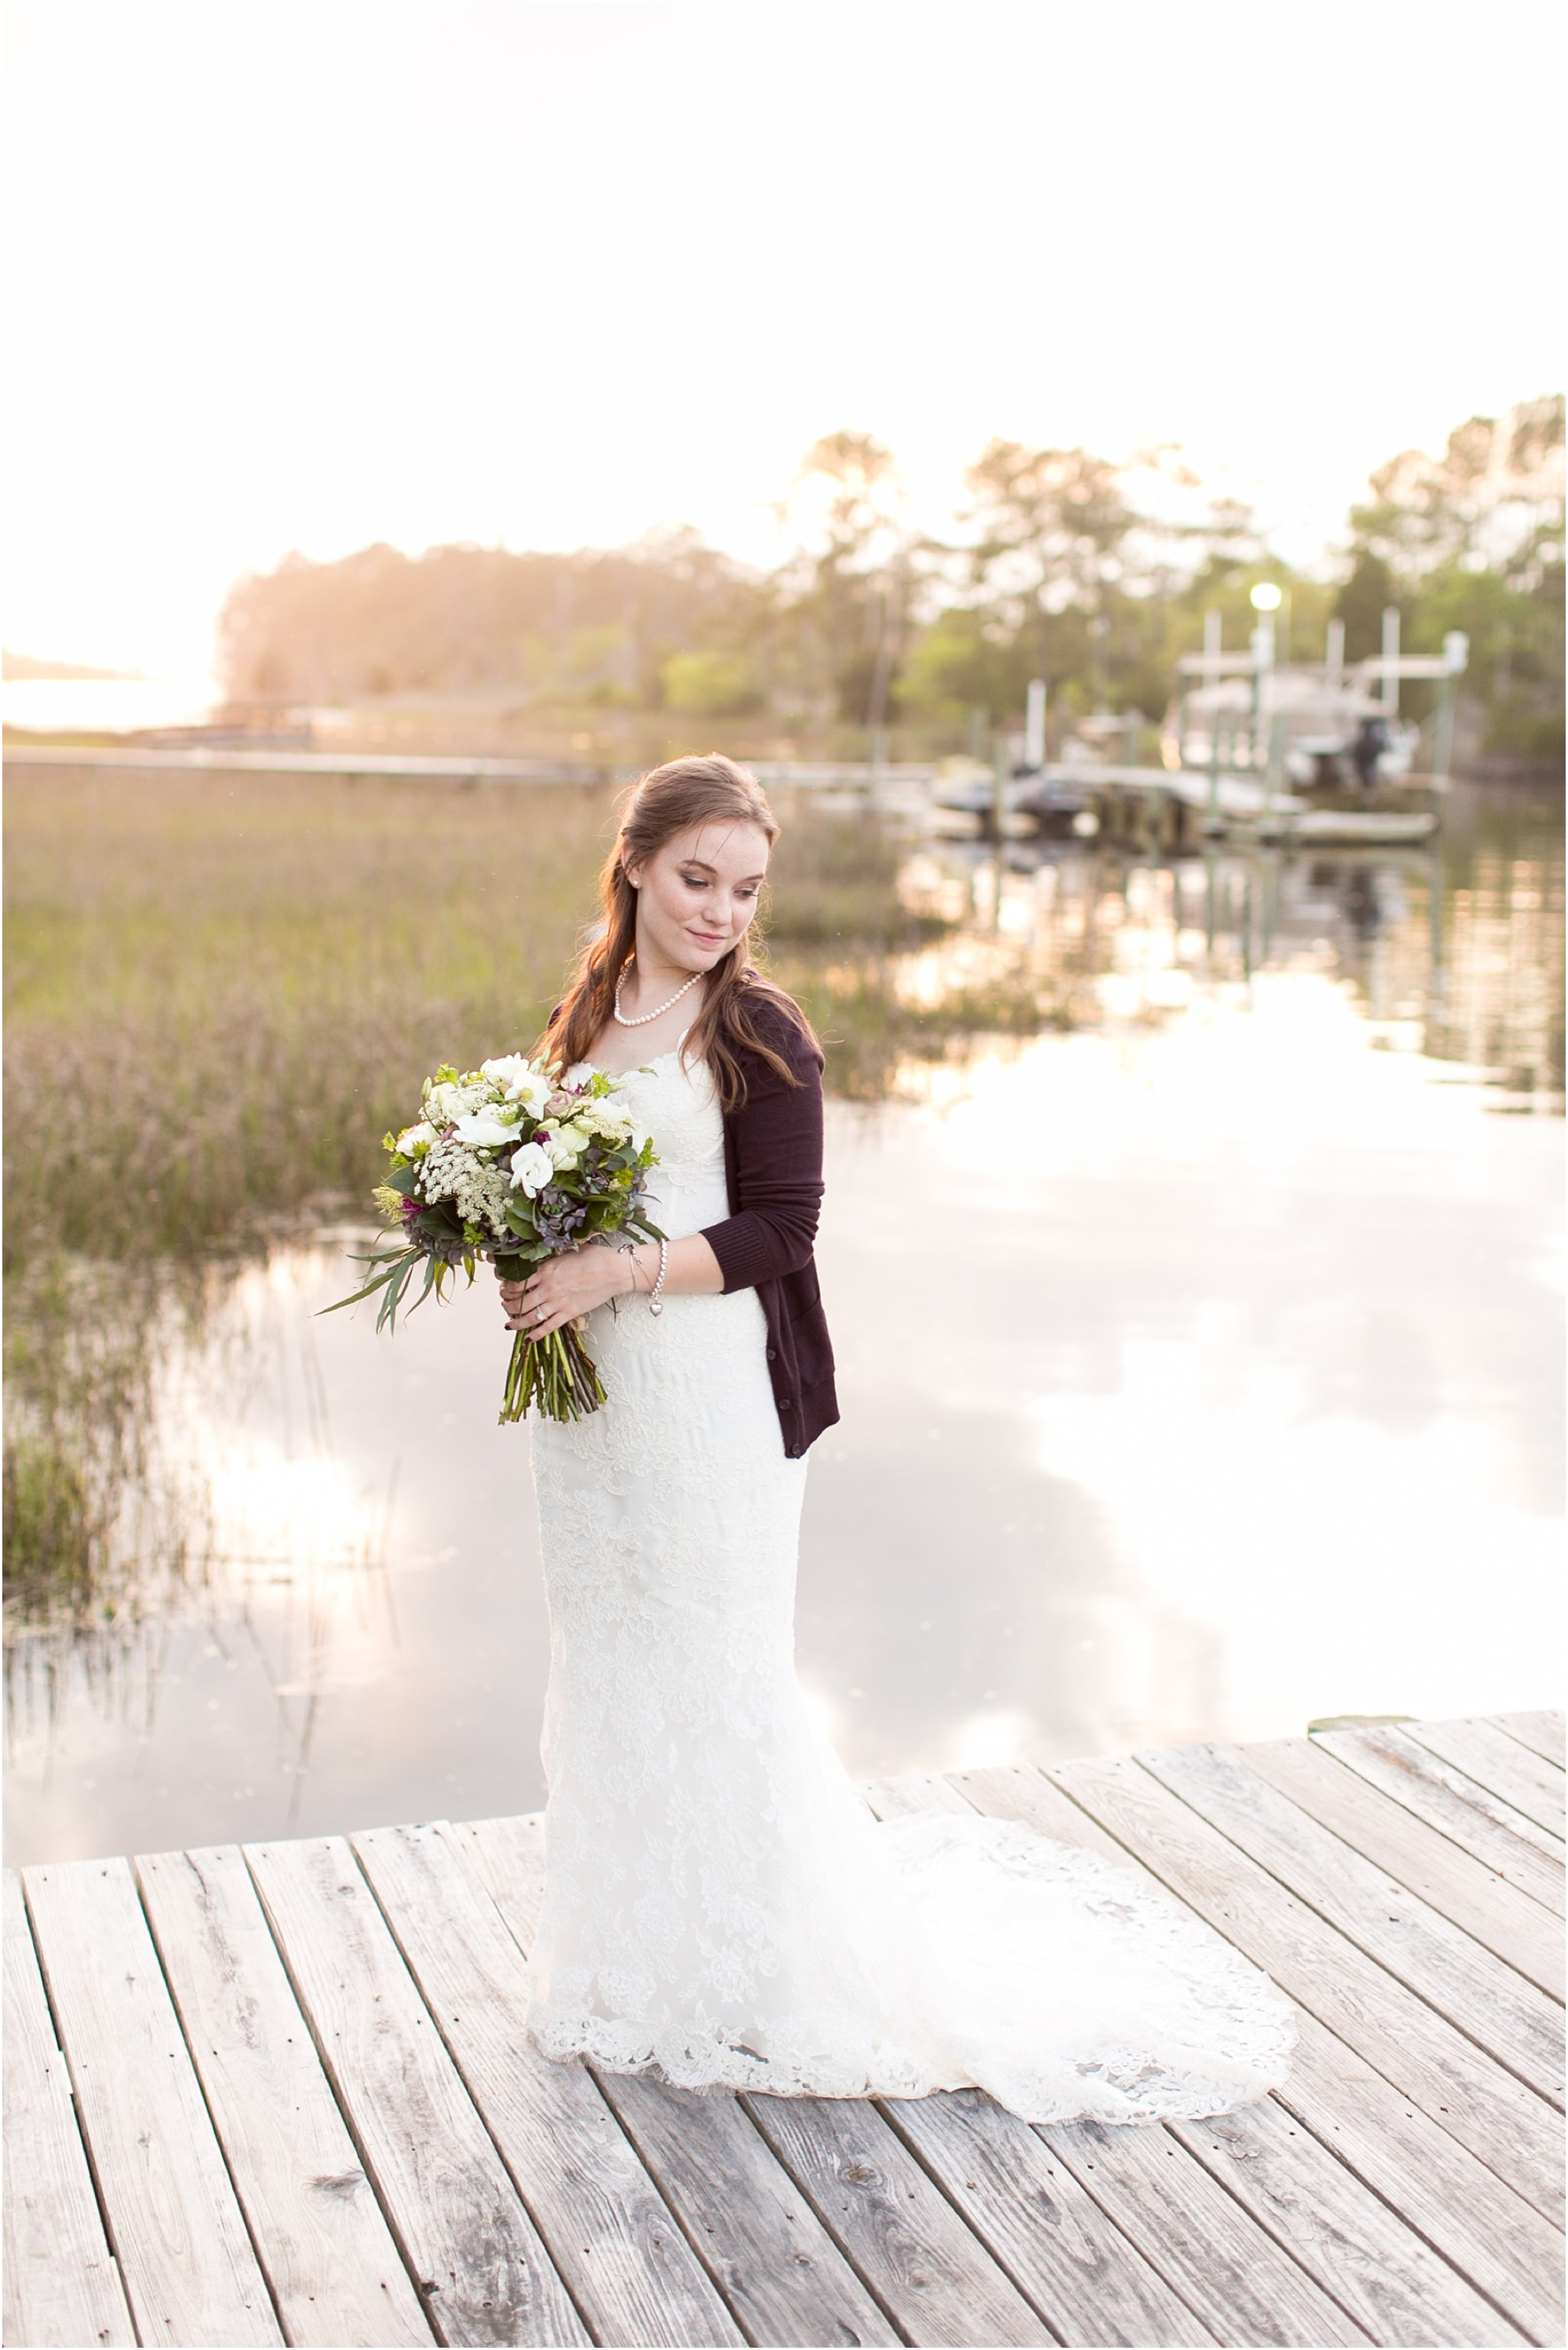 jessica_ryan_photography_virginia_virginiabeachwedding_bayislandvirginiabeach_backyardwedding_waterfrontwedding_intimatewedding_vintagewedding_1612